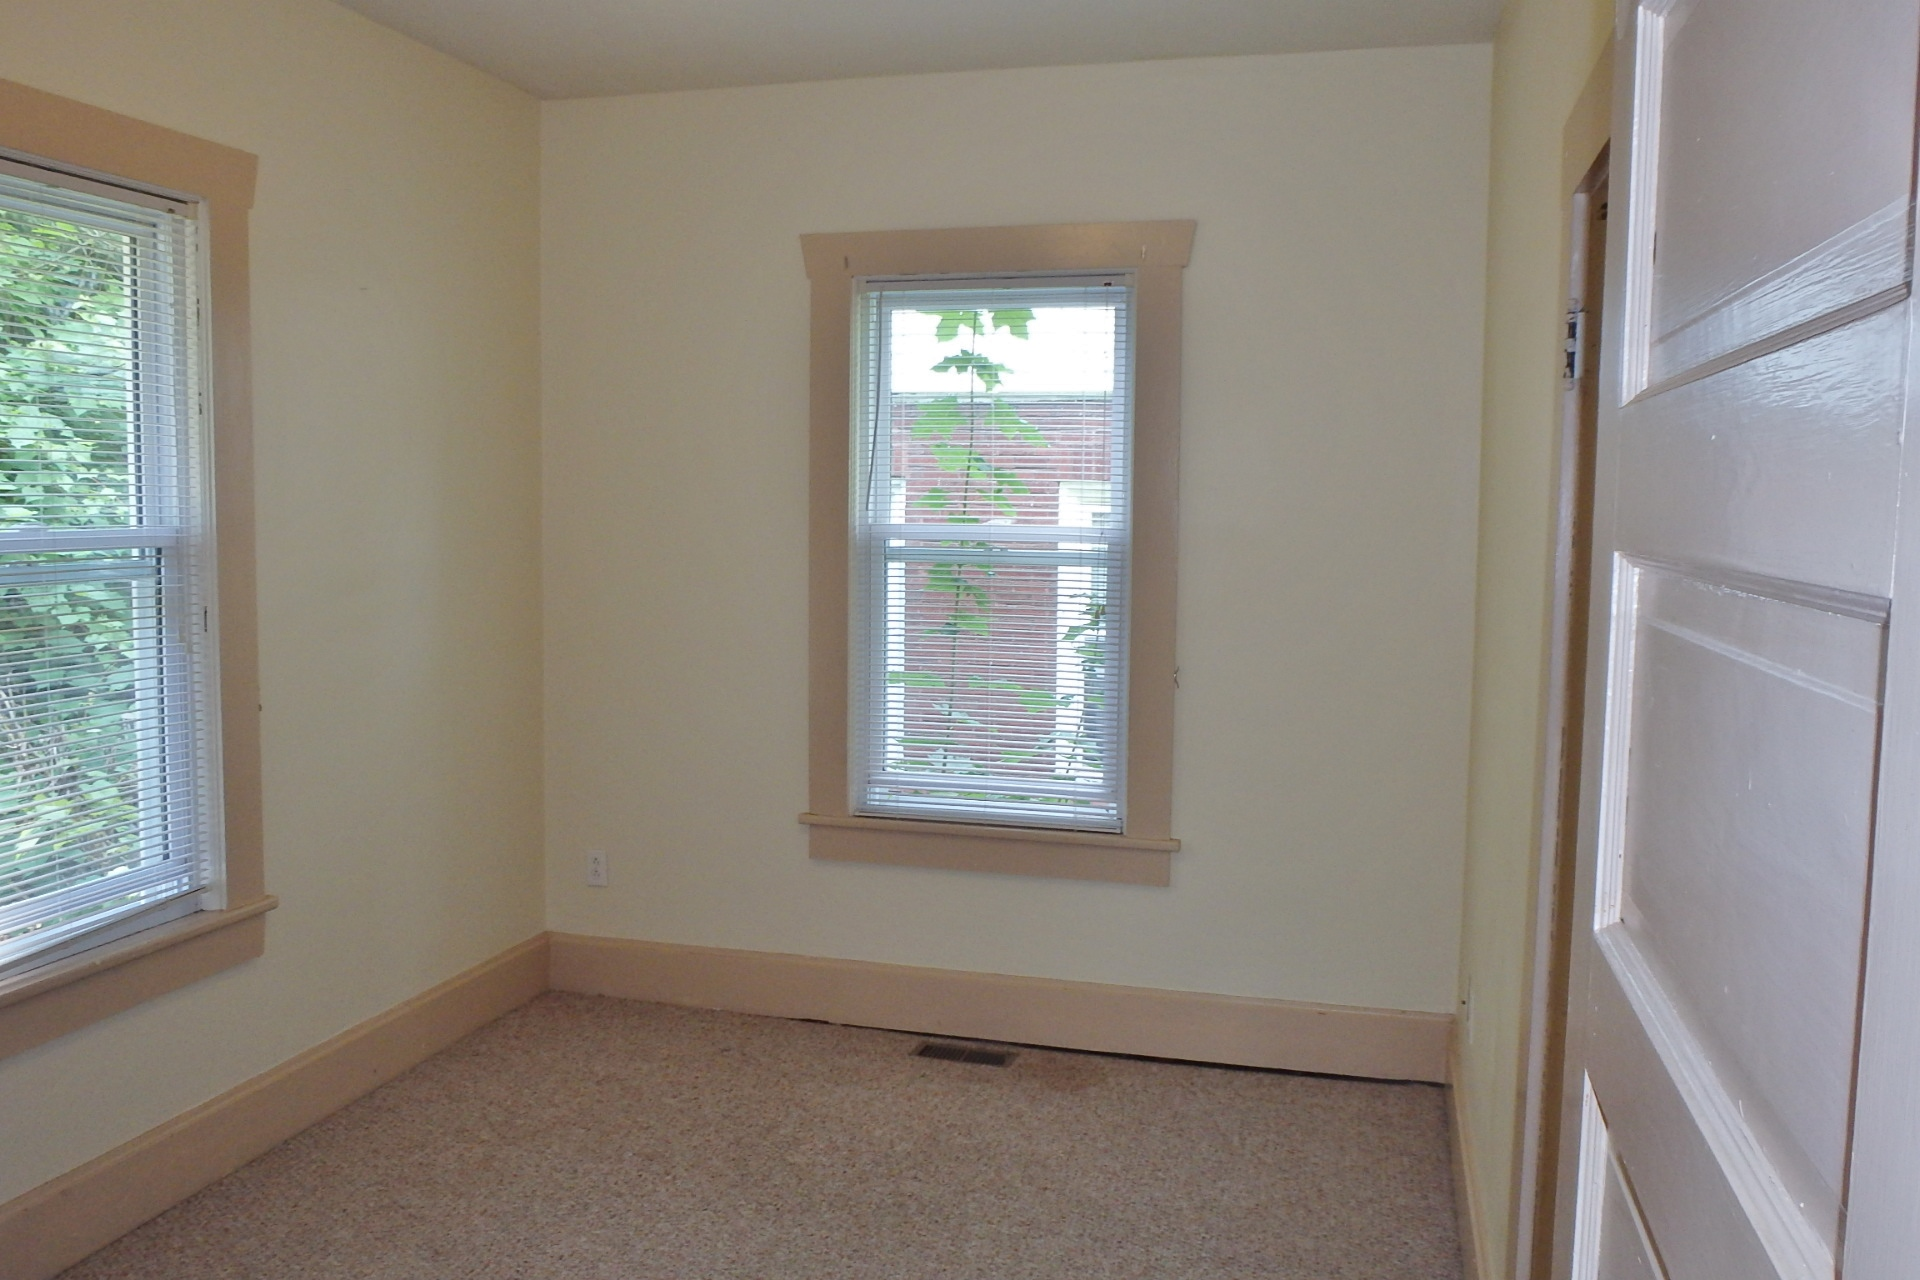 Bedroom 2 photo of the house for rent at 250 S. Barnard Street, State College.